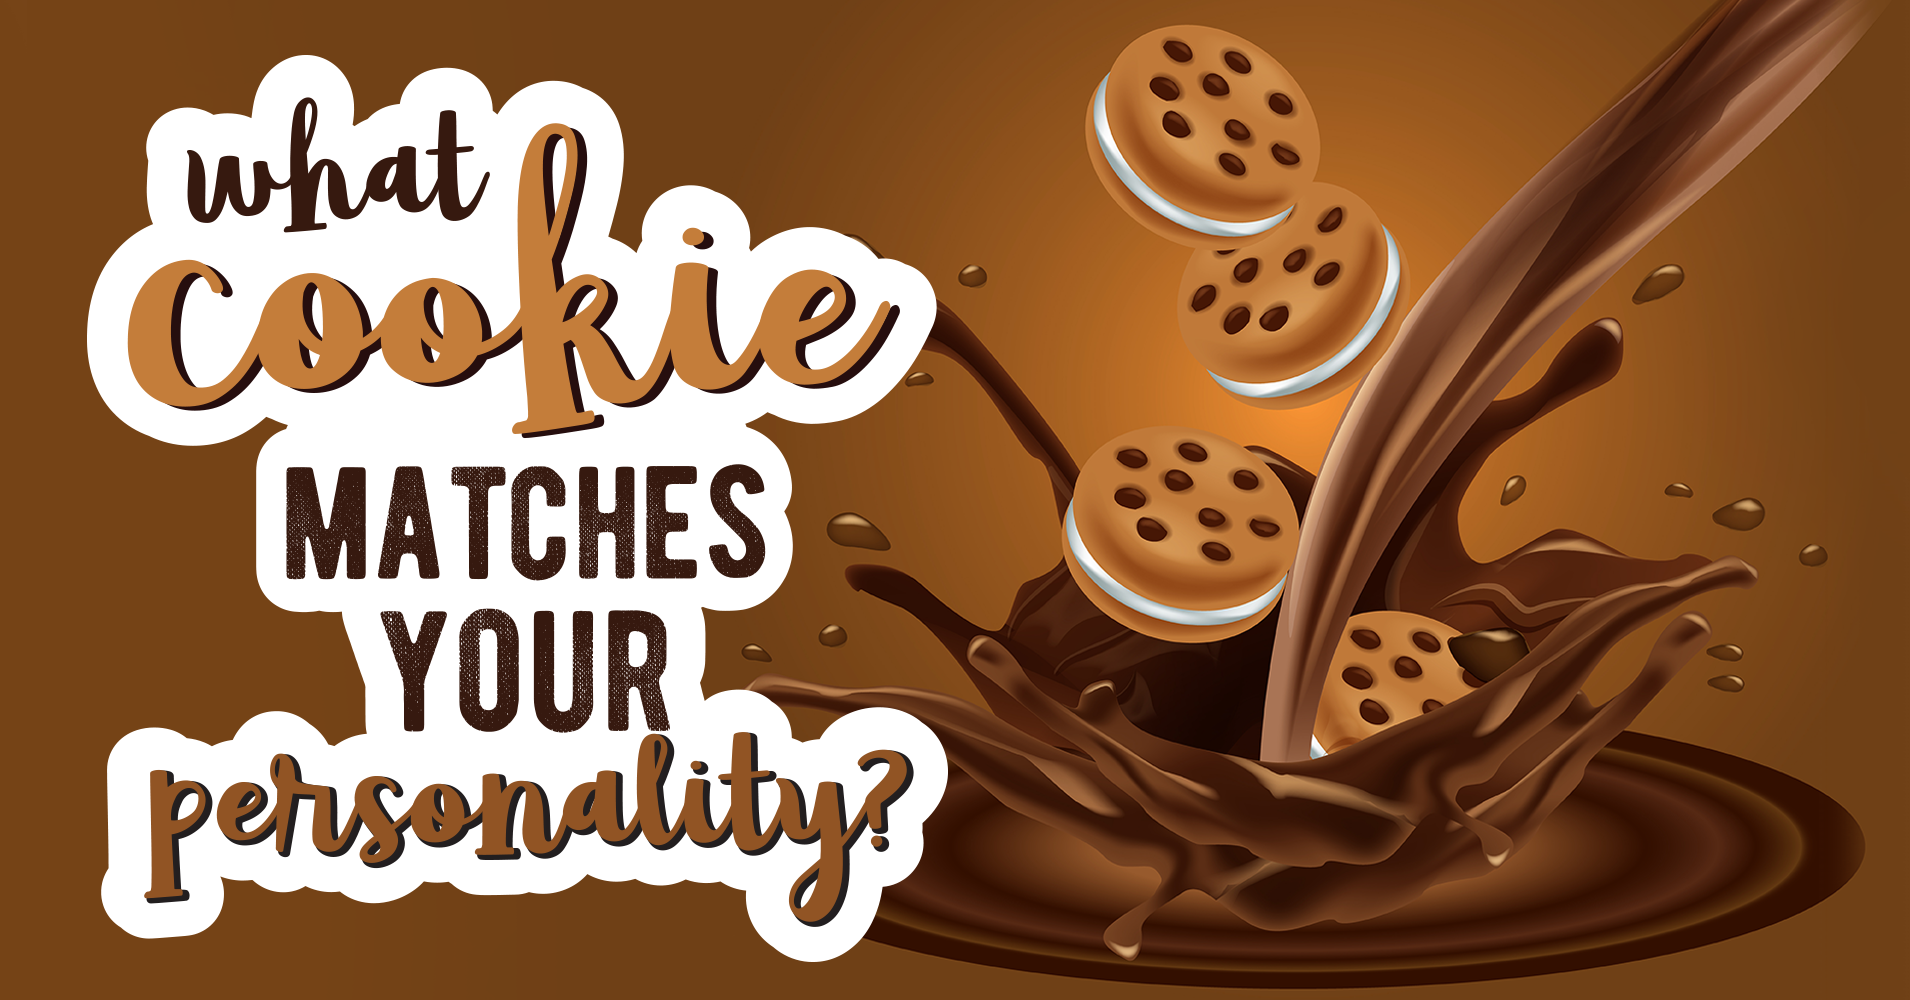 What Cookie Matches Your Personality?